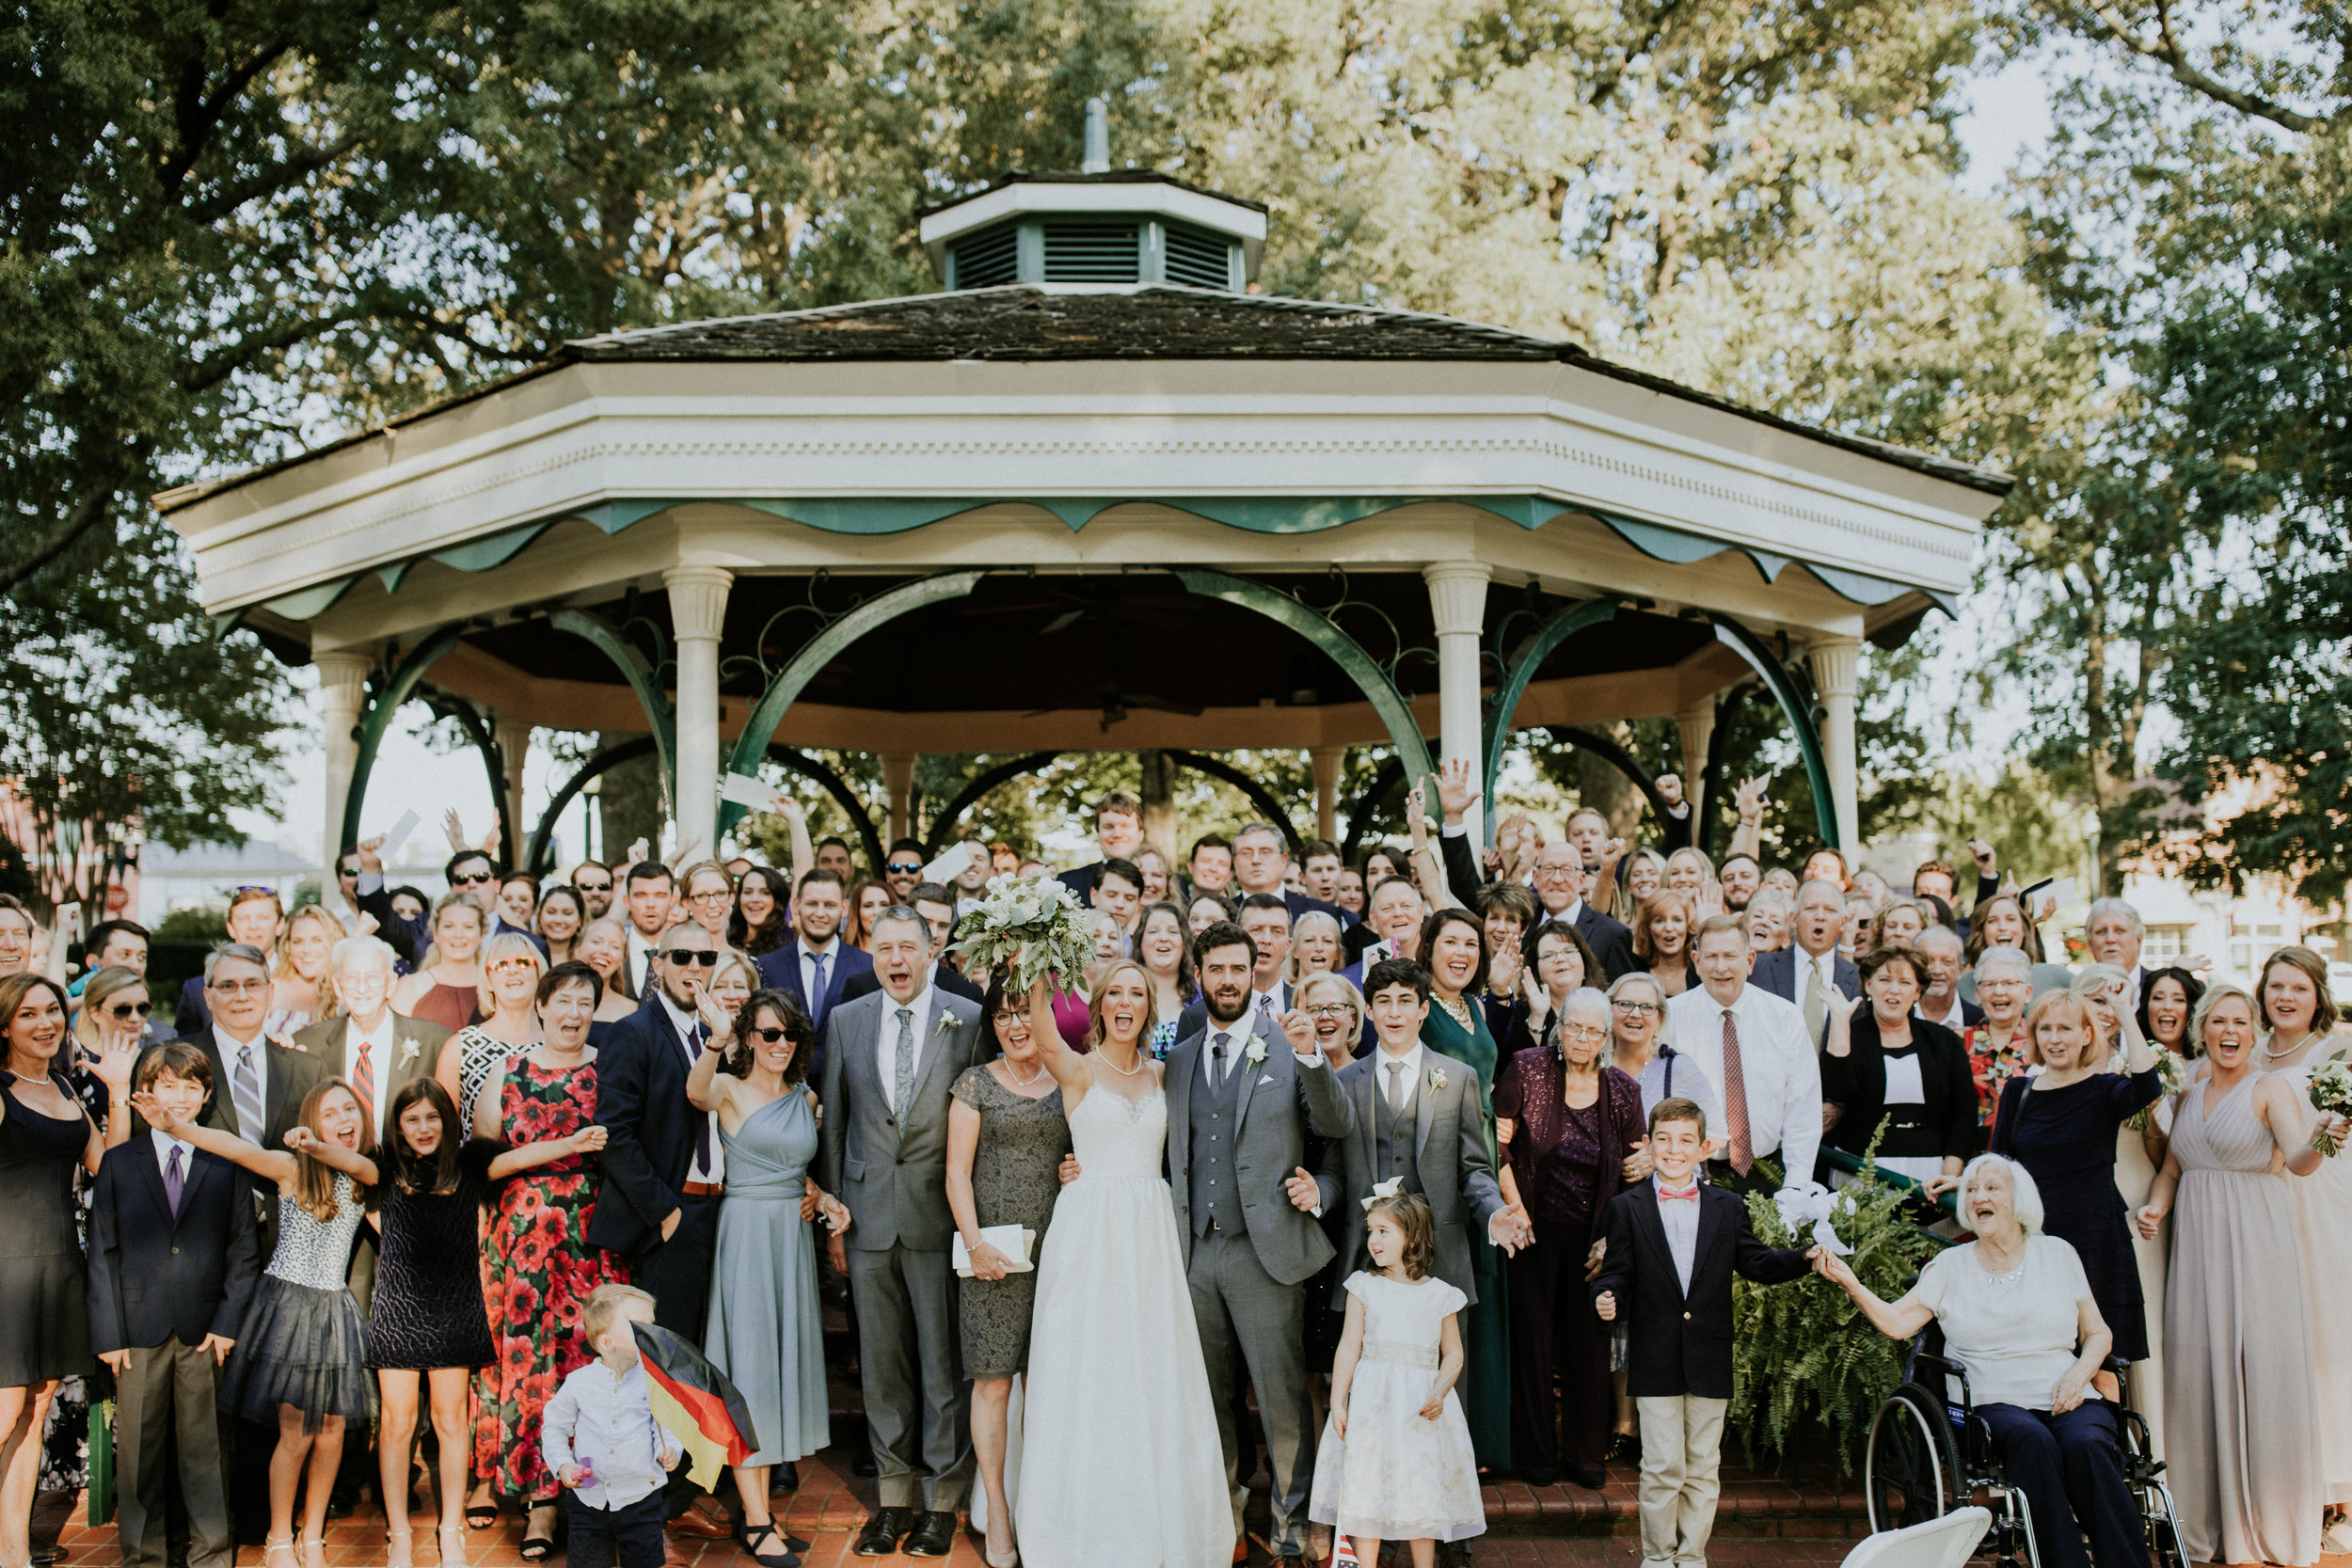 Anna and Joseph requested a group photo with all their guests right after the ceremony. It was so awesome! Anna's family came from Germany, and their friends traveled from around the globe to celebrate with them in Collerville, Tennessee.